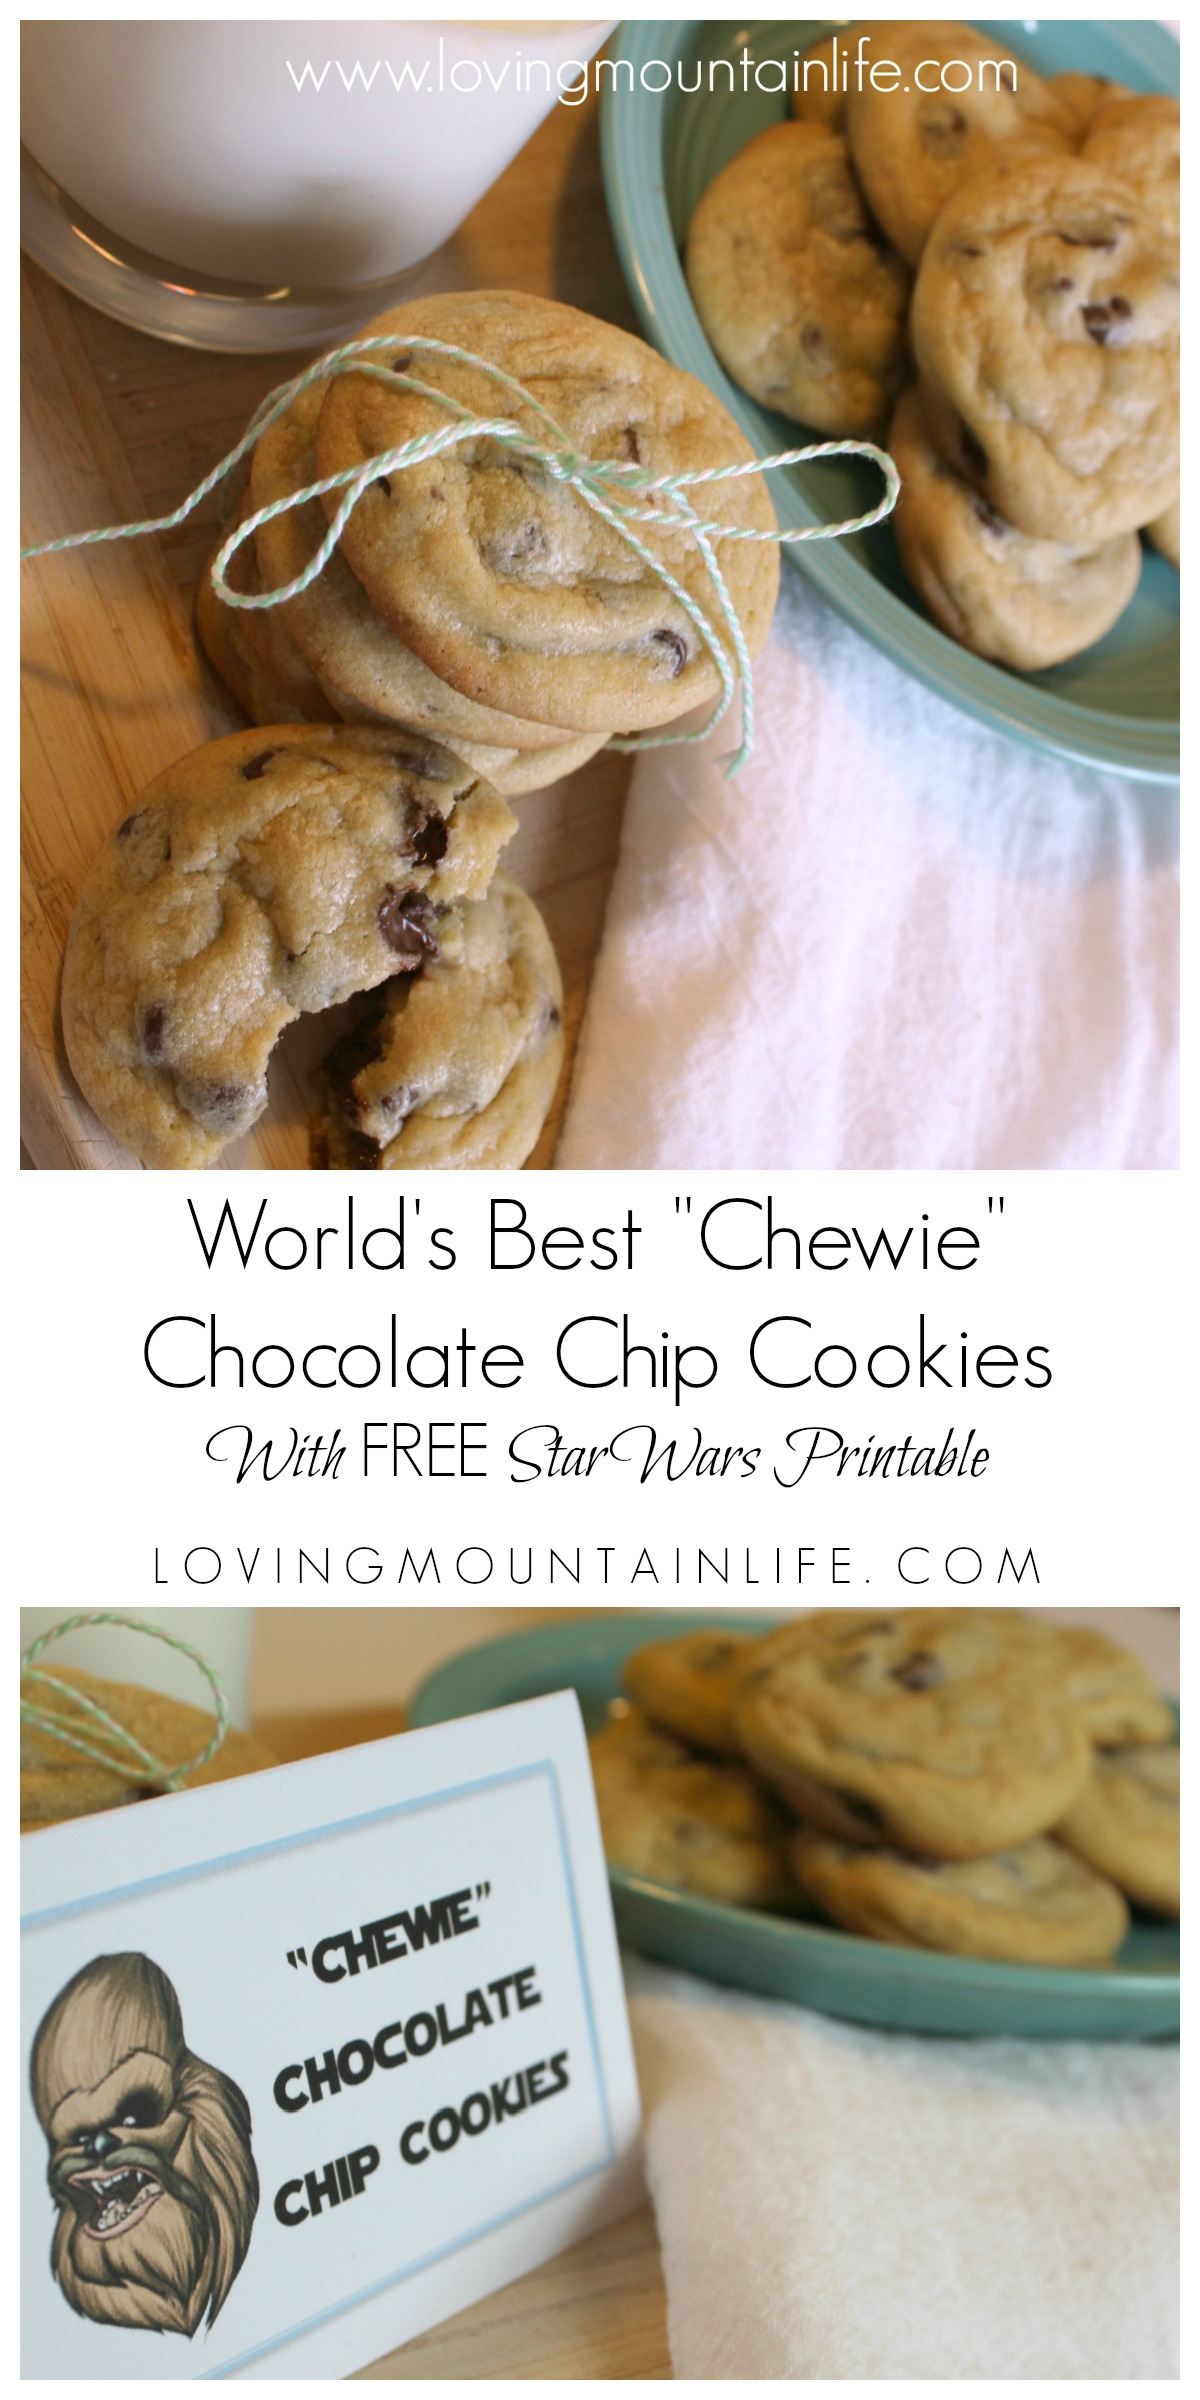 http://www.lovingmountainlife.com/wp-content/uploads/2016/05/Chewie-Chocolate-Chip-Cookie-Table-Tent-from-Loving-Mountain-Life.pdf